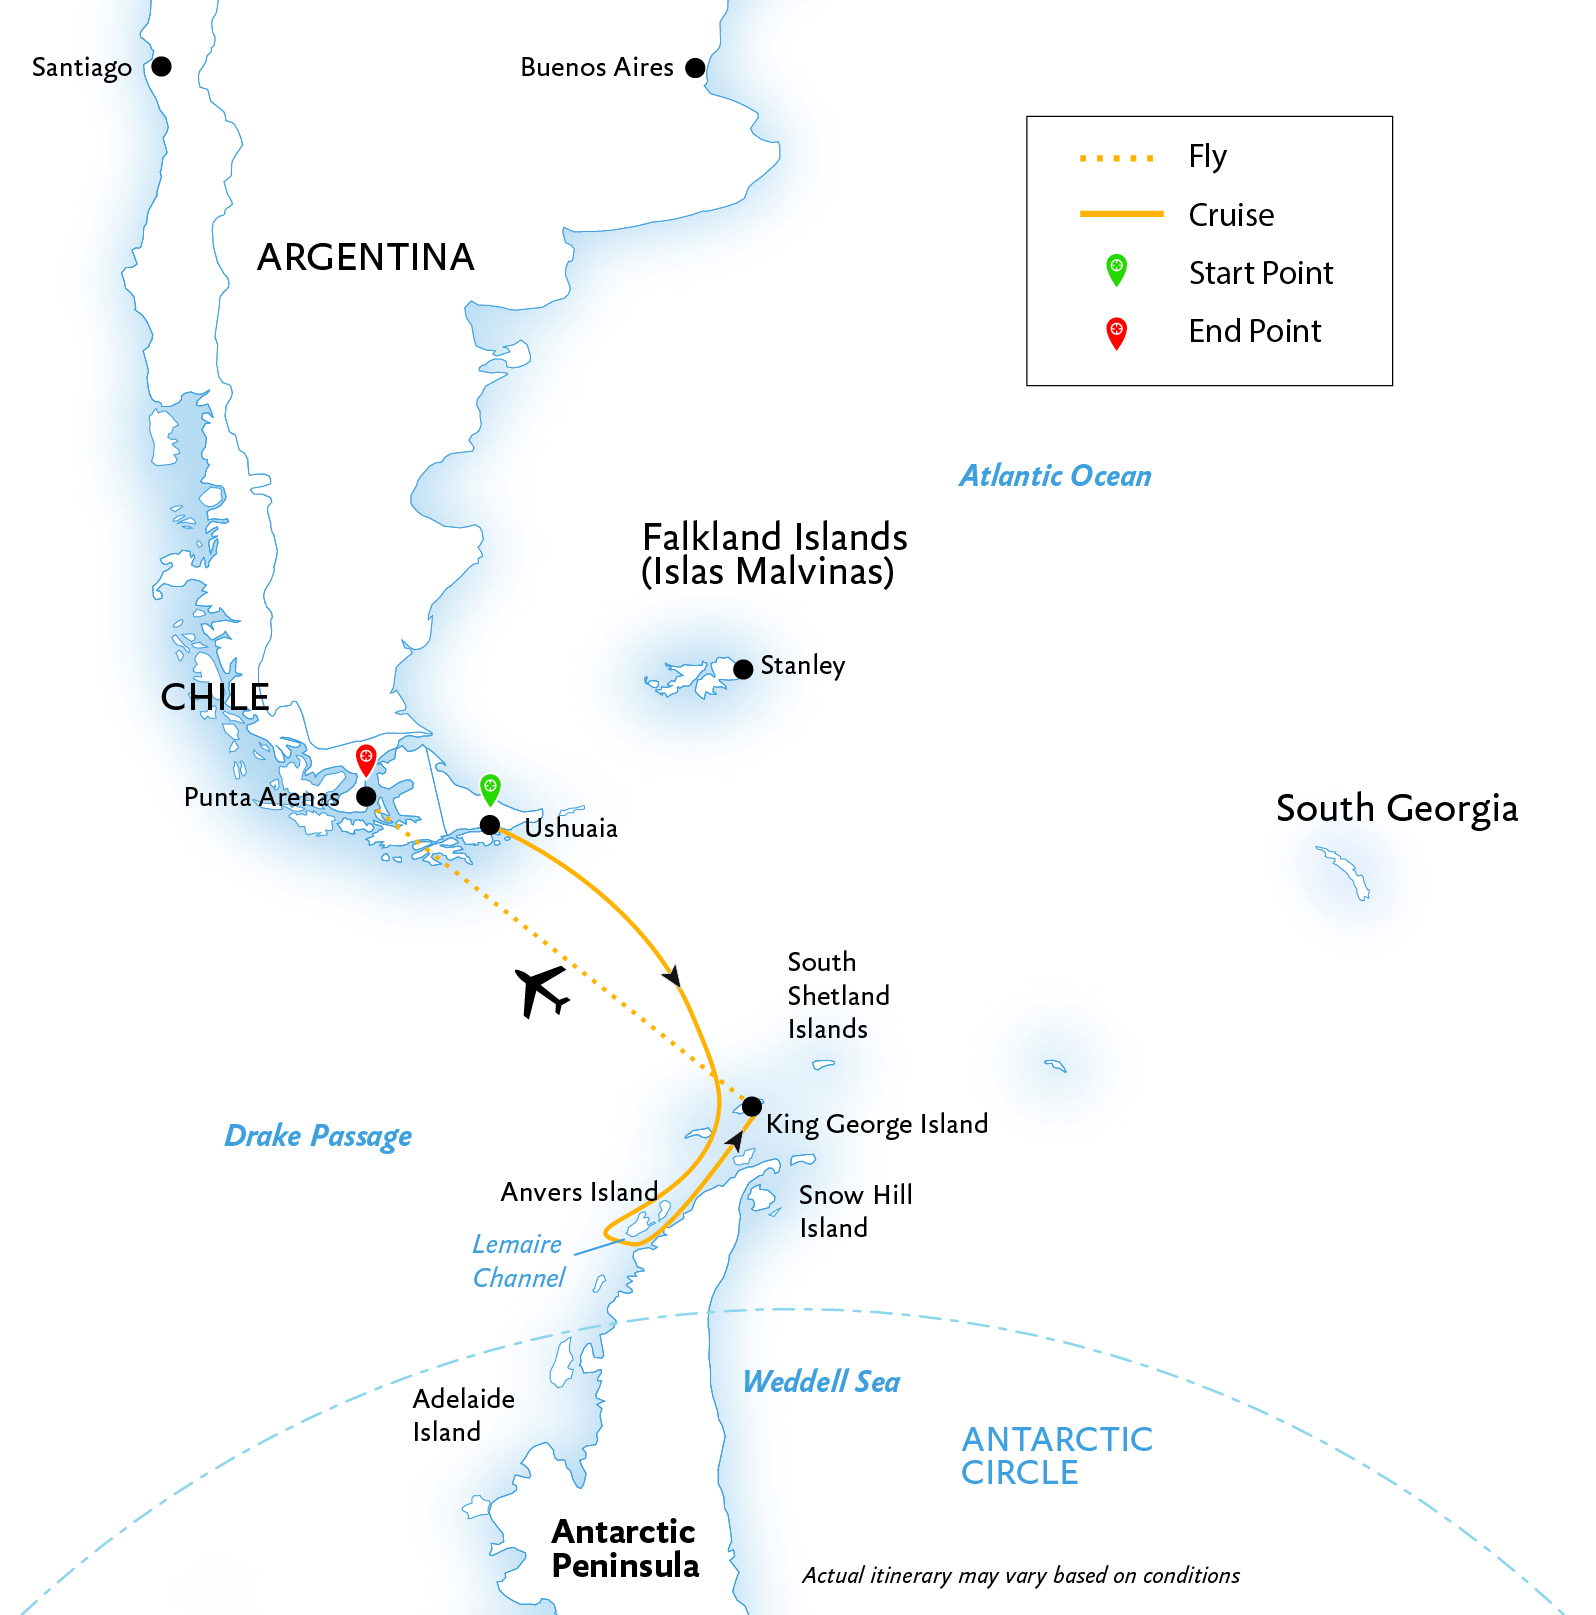 Antarctic Express Cruise South, Fly North map